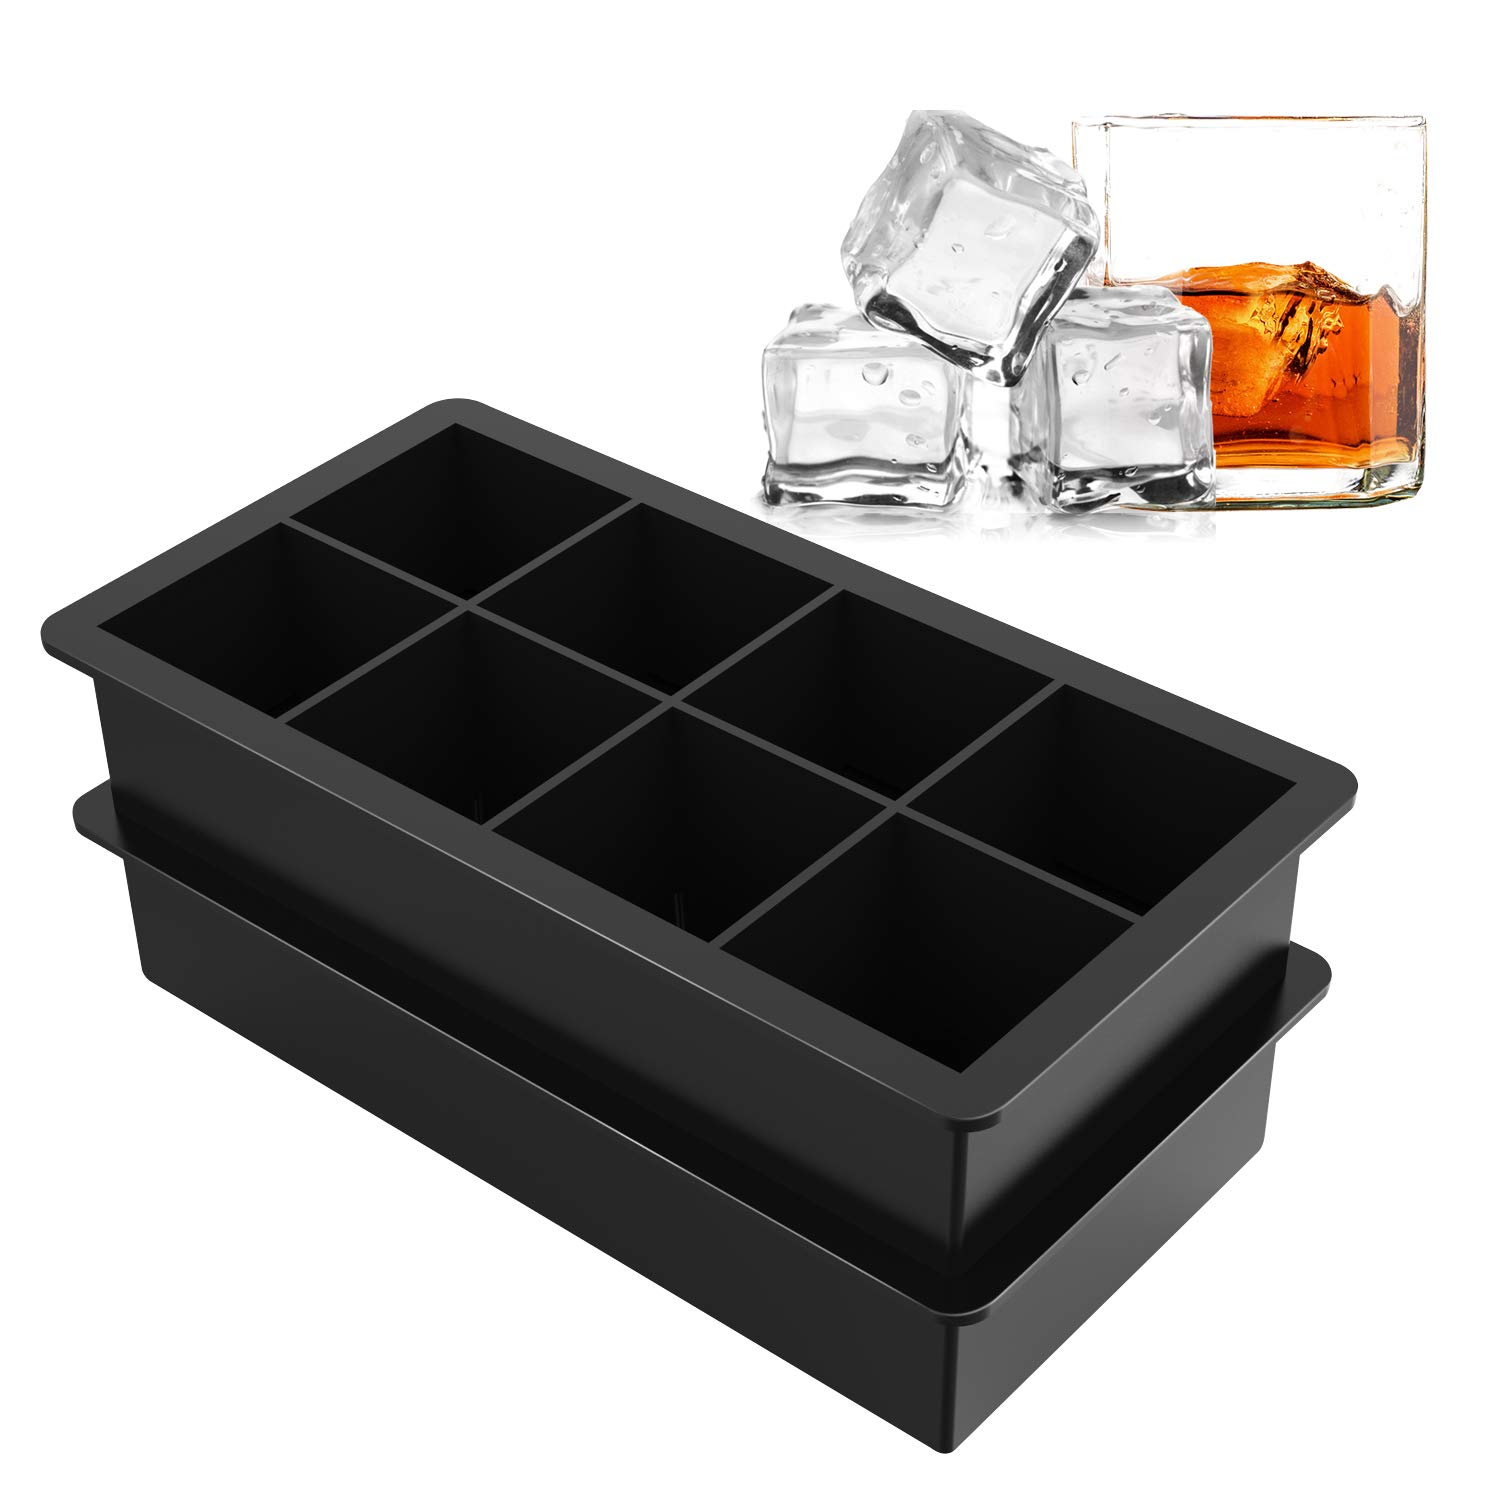 Ice Cube Trays Silicone Large Square Ice Cube Molds for Whiskey and Cocktails, Keep Drinks Chilled, Reusable and BPA Free (2pc/Pack)